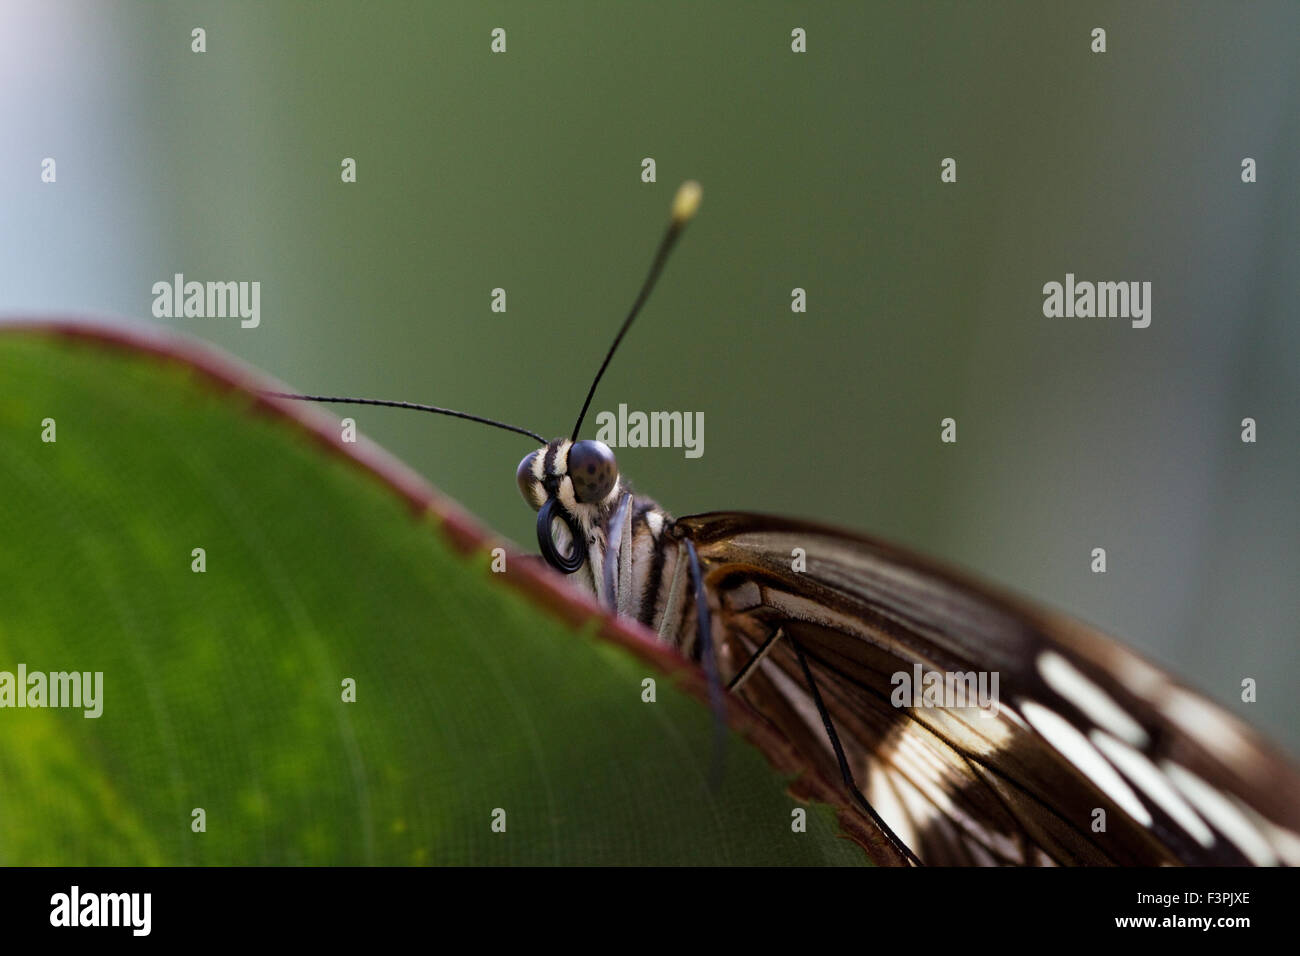 Common Sergeant Butterfly (Athyma perius) - Stock Image